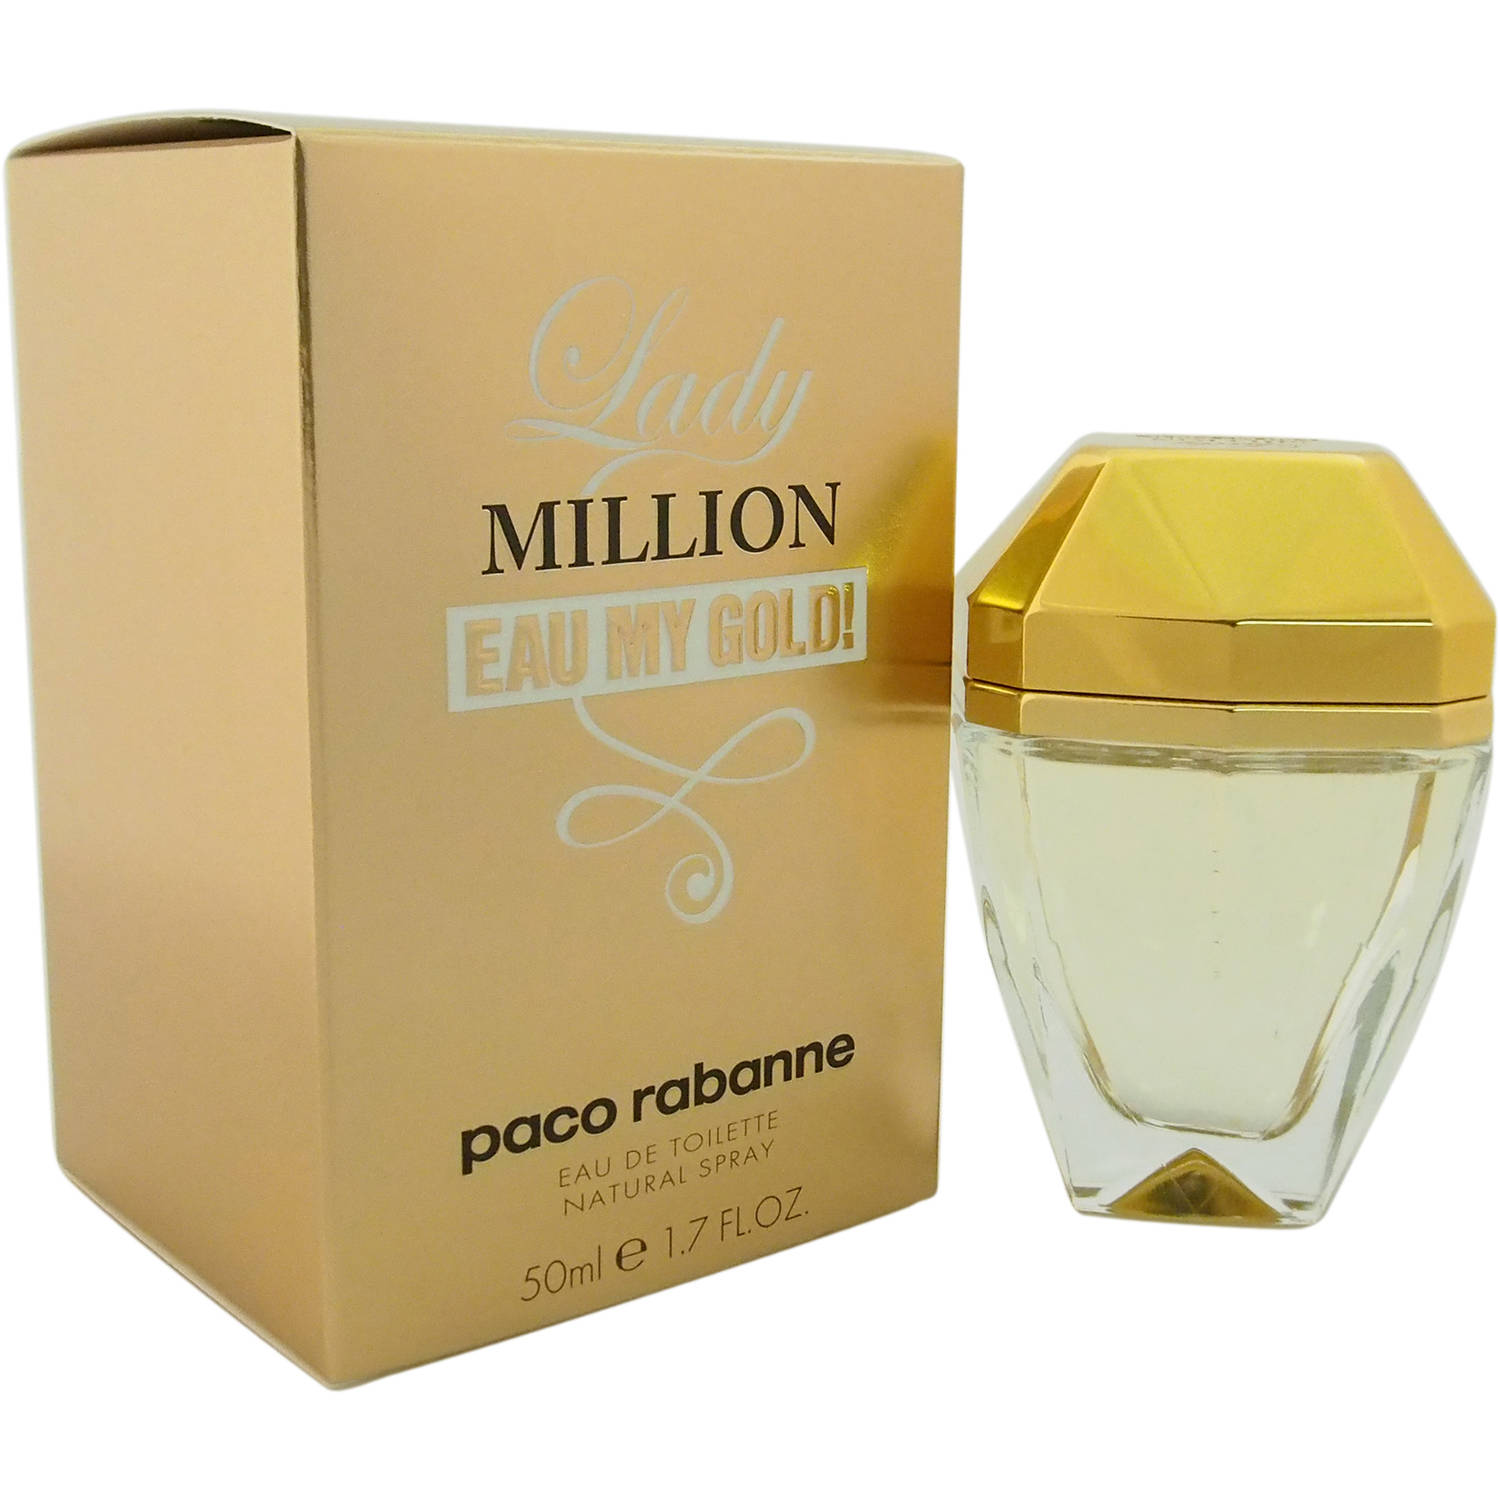 Paco Rabanne Women's Lady Million Eau My Gold! Perfume, 1.7 oz